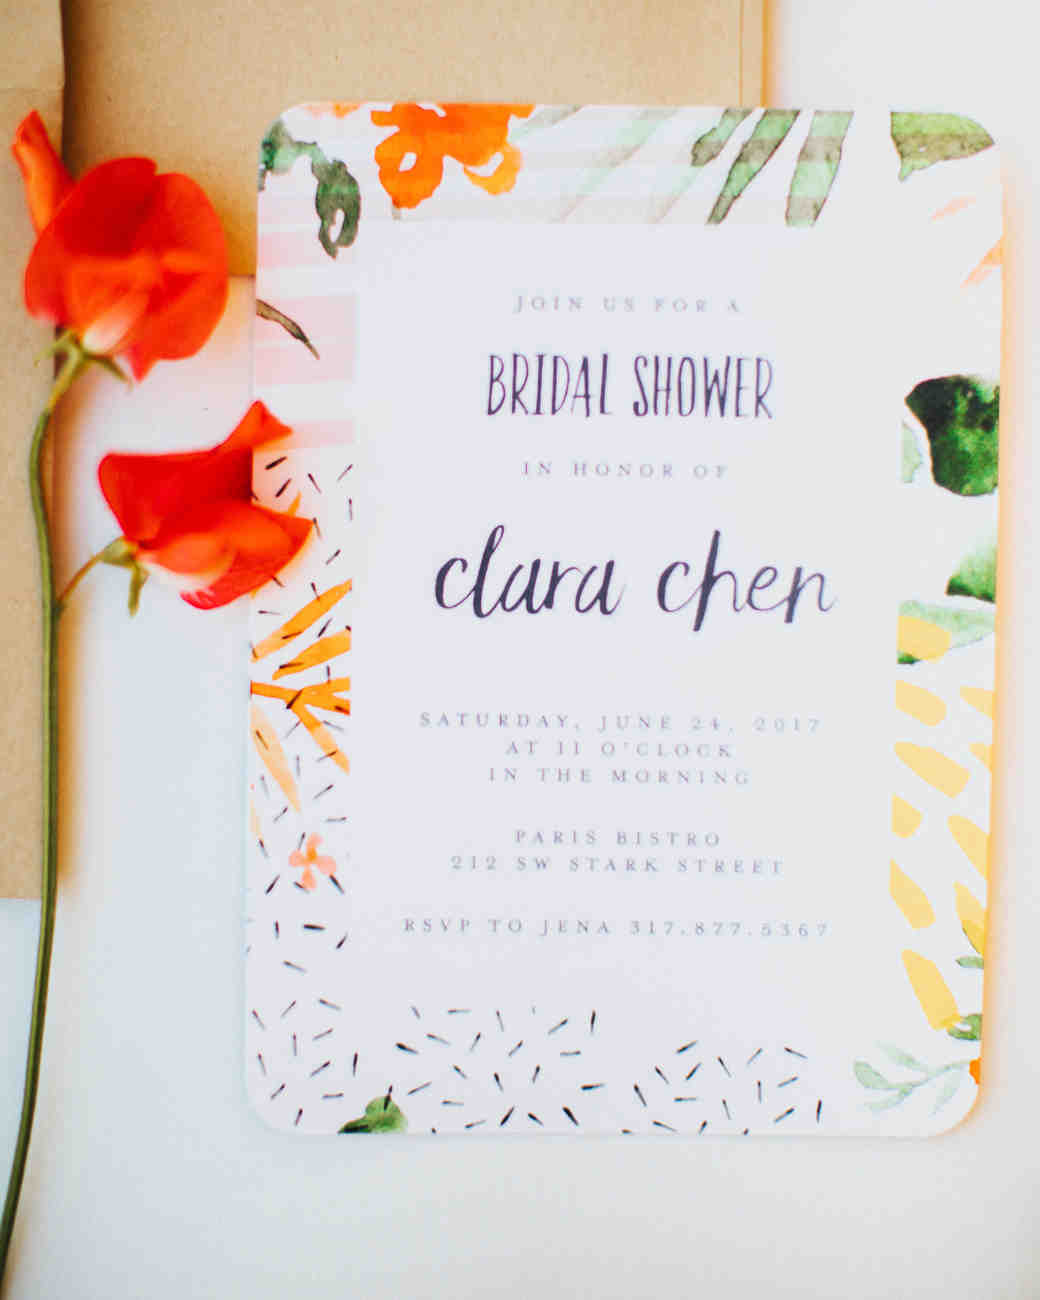 Bridal Shower Invitations We Absolutely Love | Martha Stewart Weddings